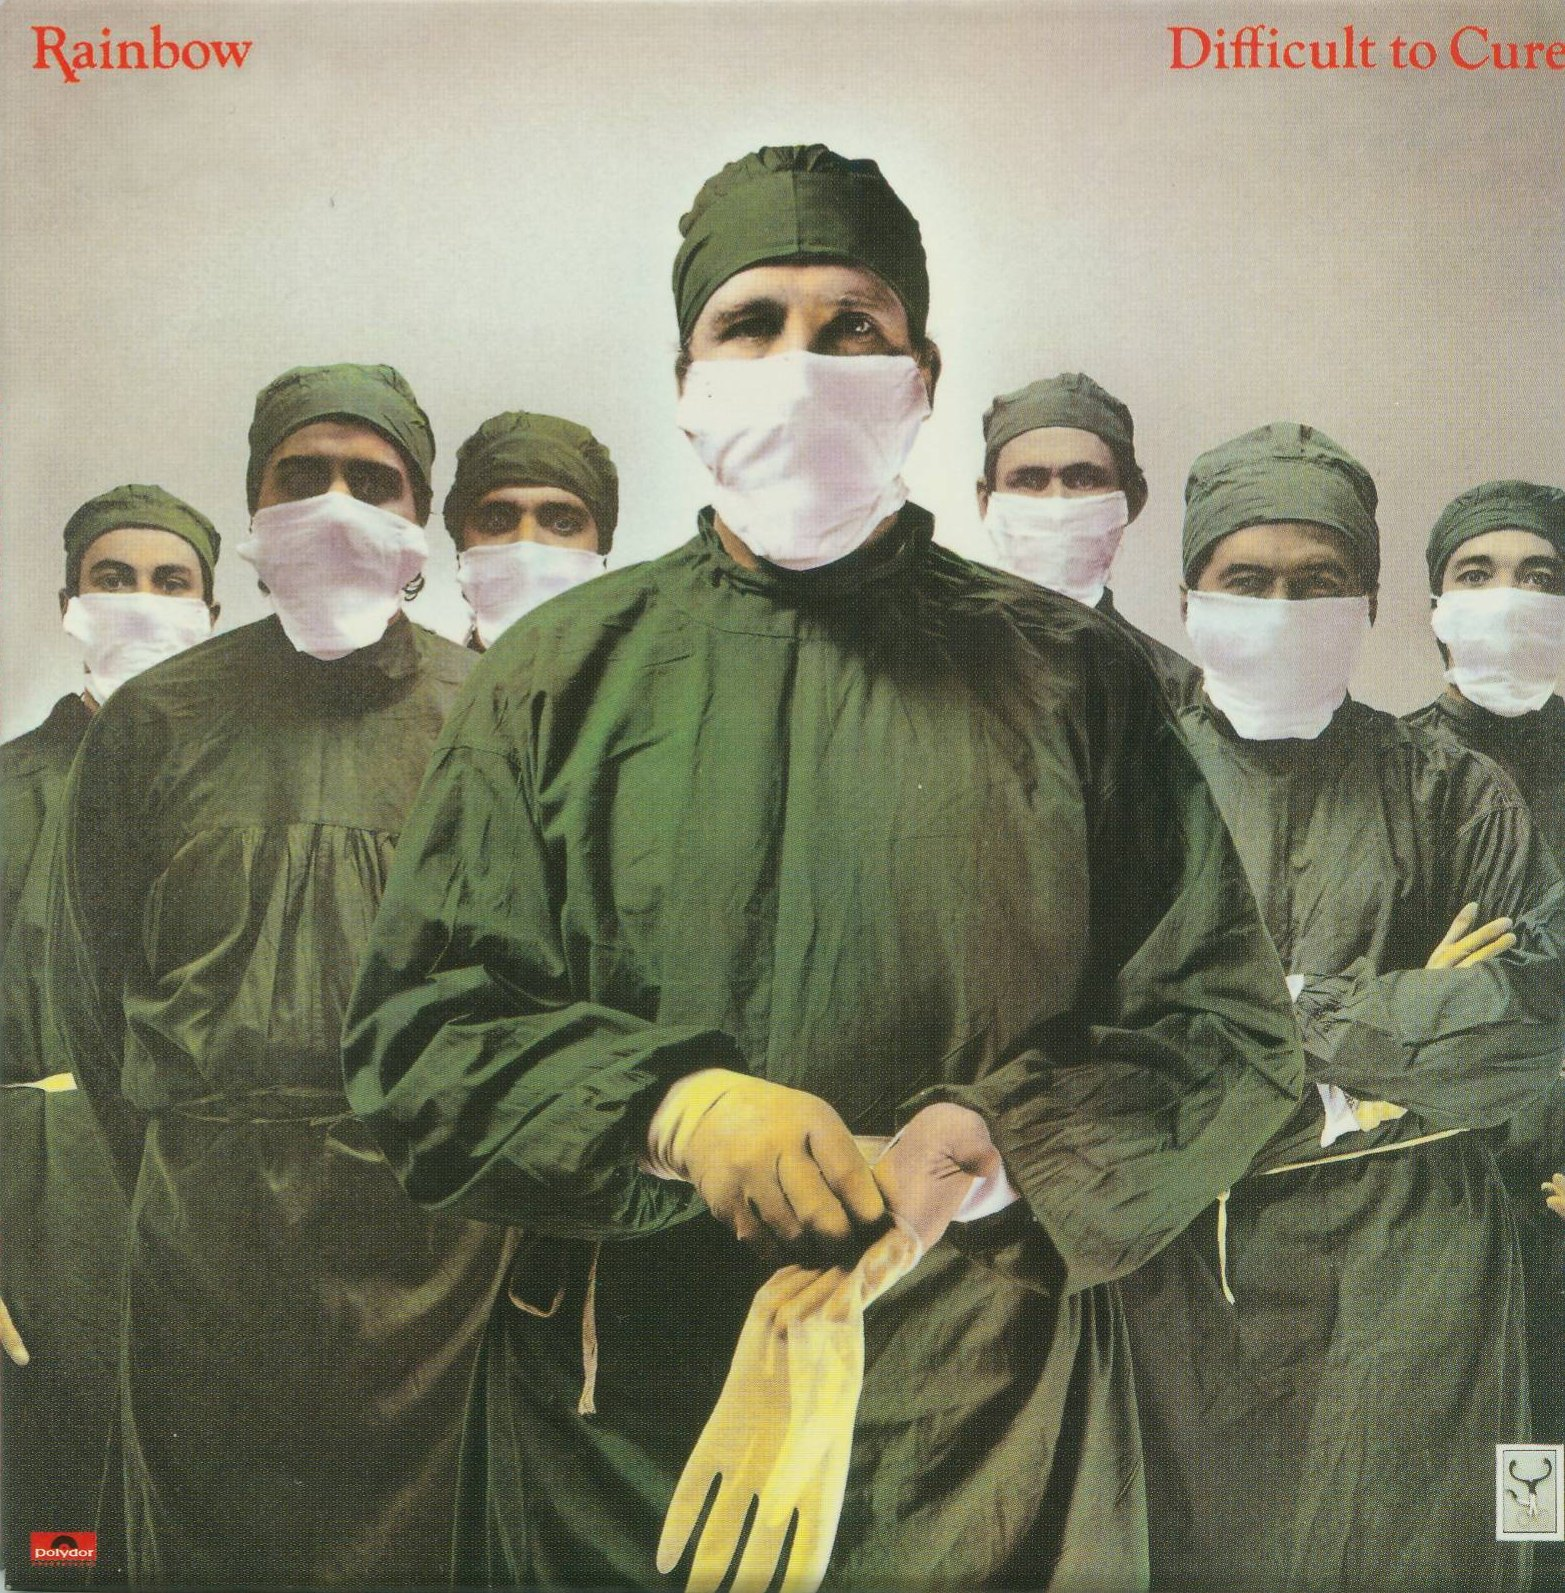 CD Review: Difficult To Cure, by Rainbow (1981) | The Ace ...